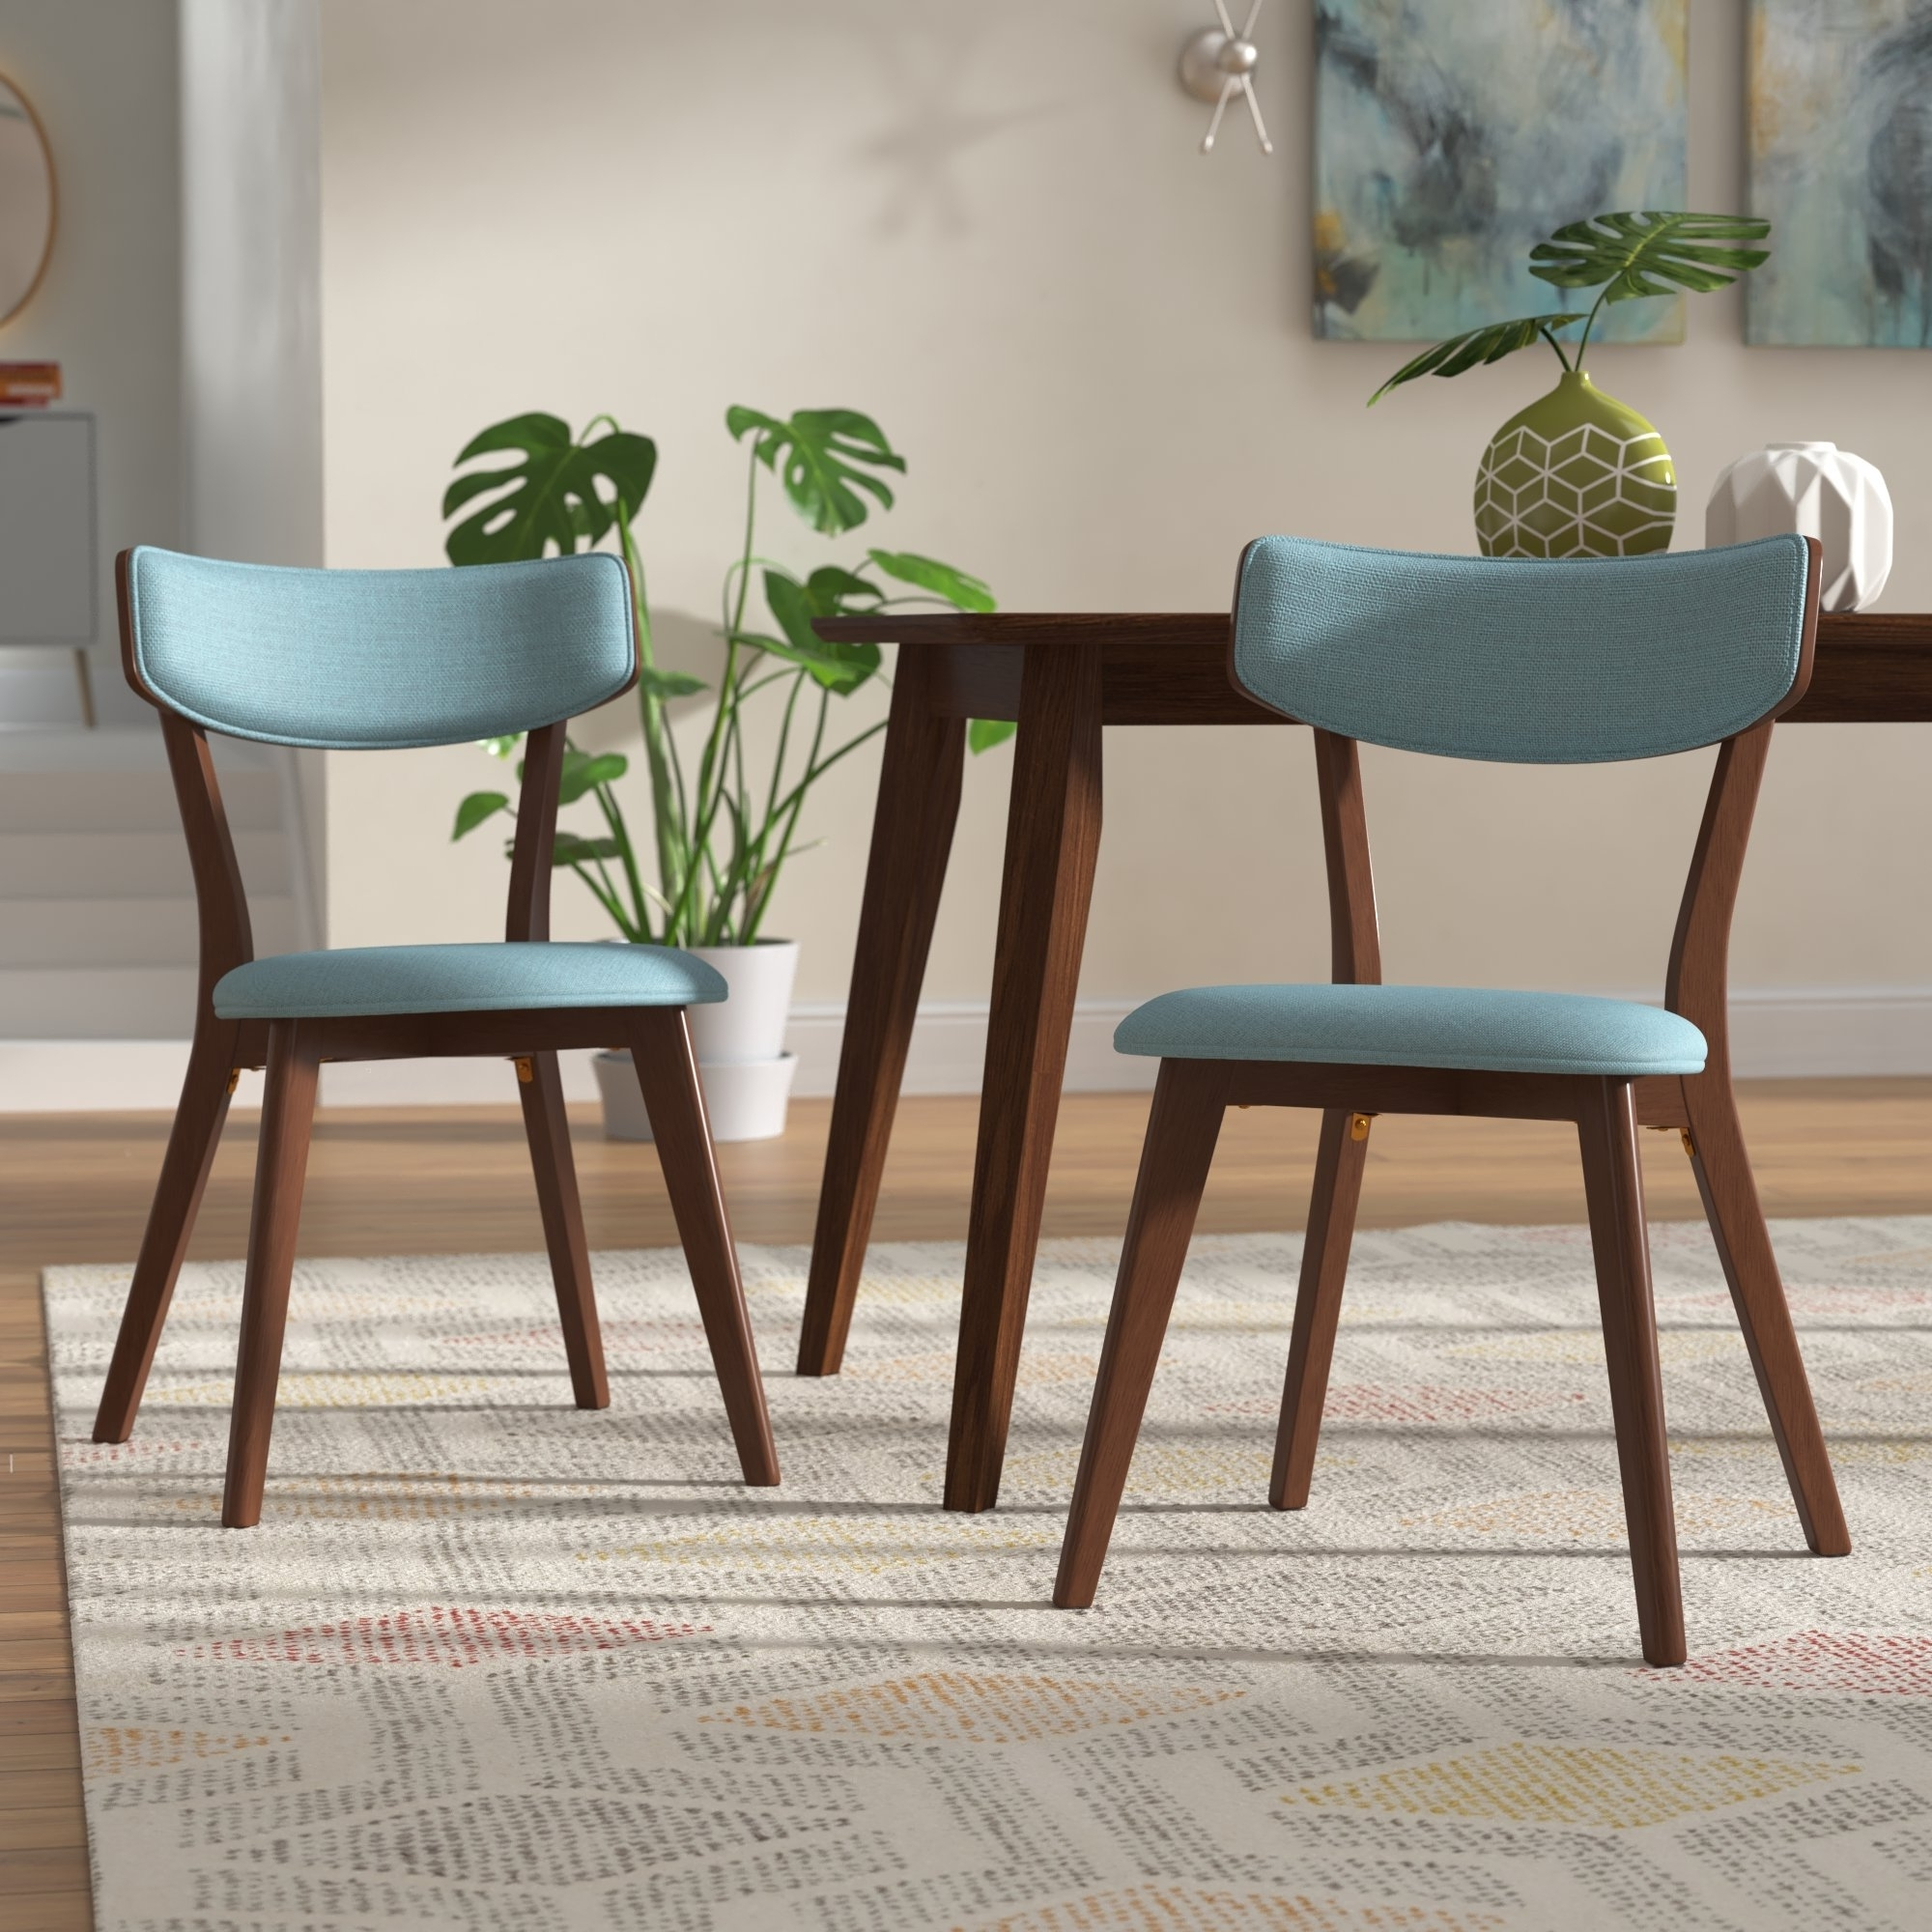 Wayfair With Regard To Fashionable Dining Chairs With Blue Loose Seat (View 18 of 20)